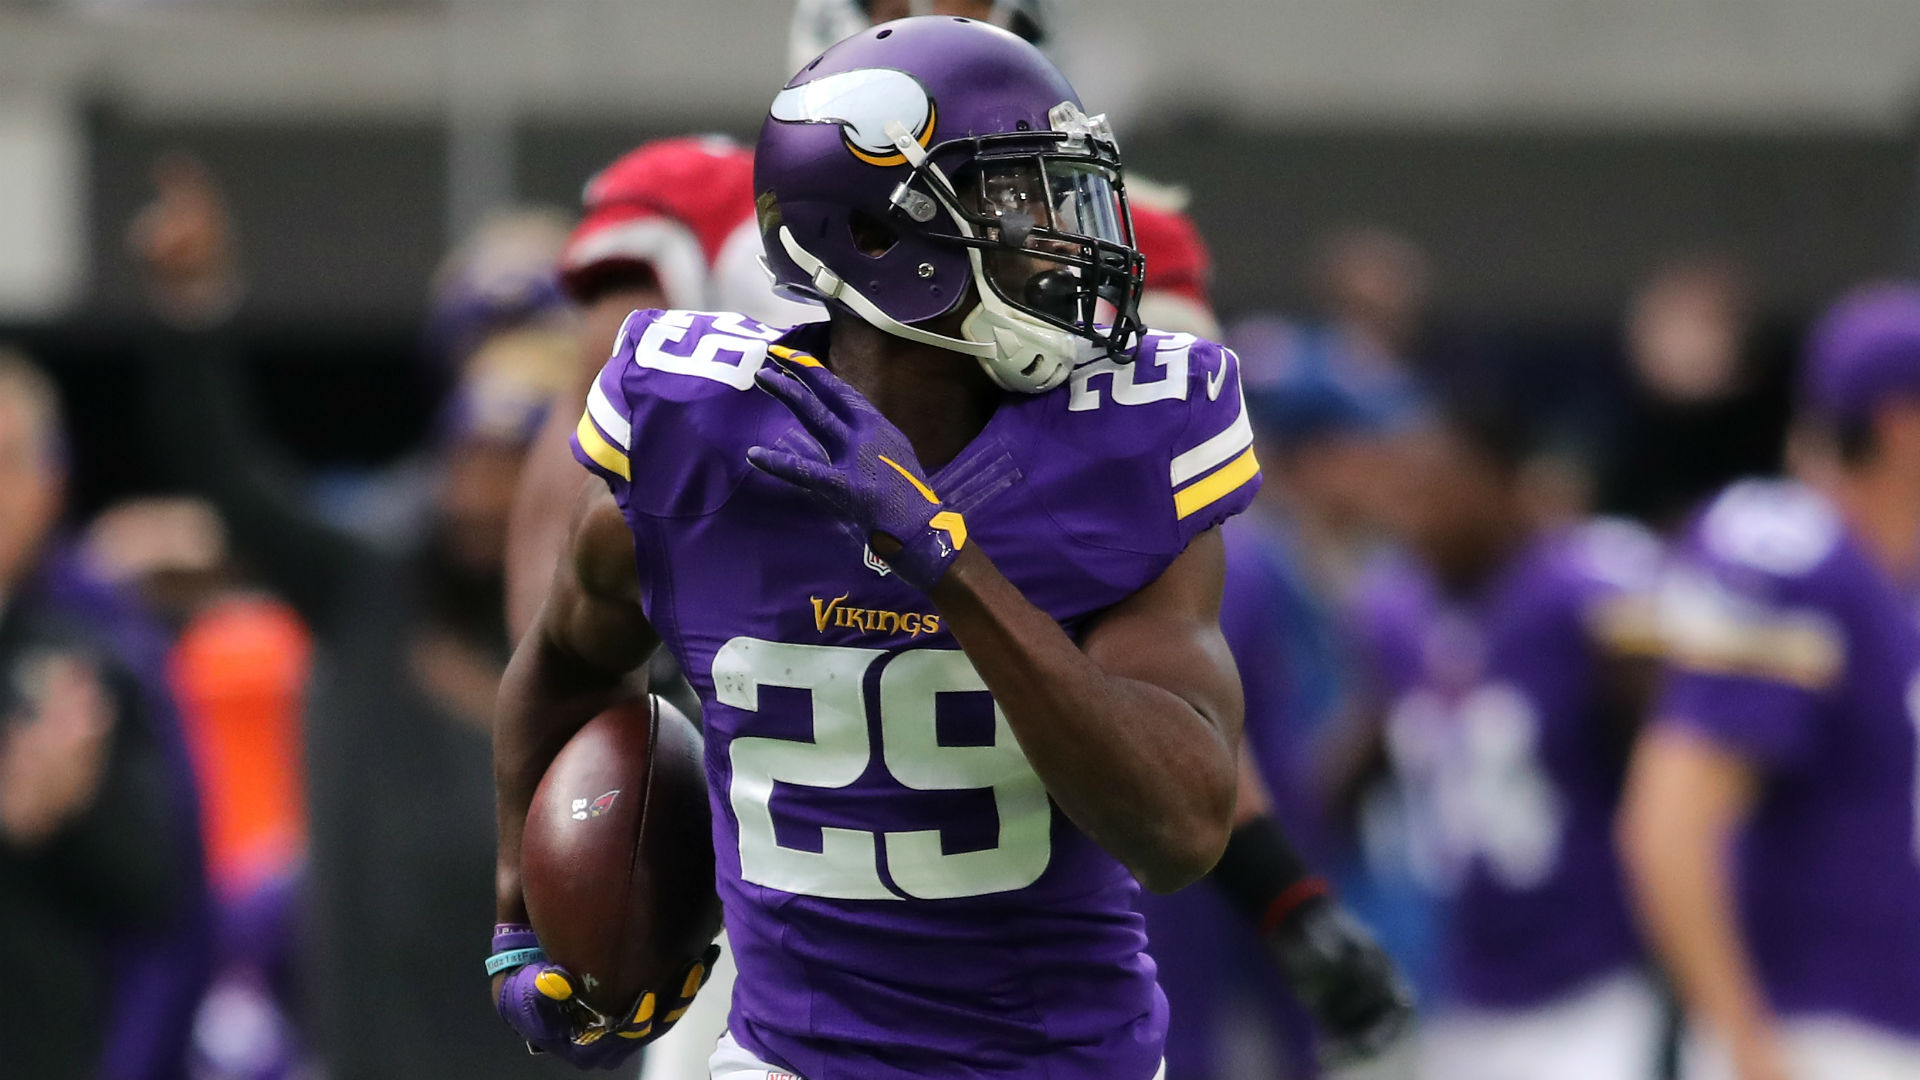 Vikings sign Xavier Rhodes to huge contract extension report says